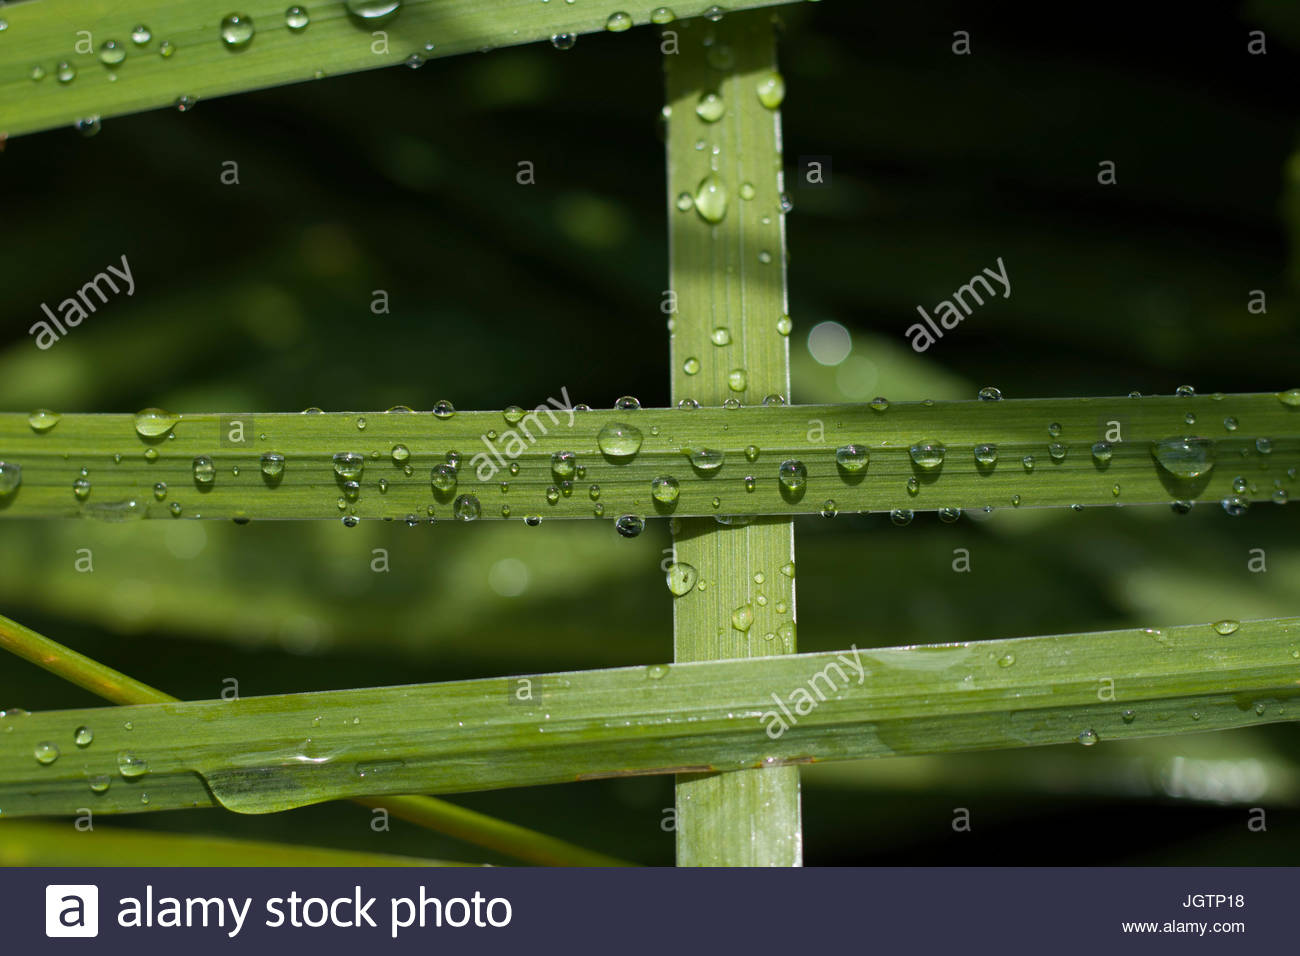 Water drops on the grass - Stock Image